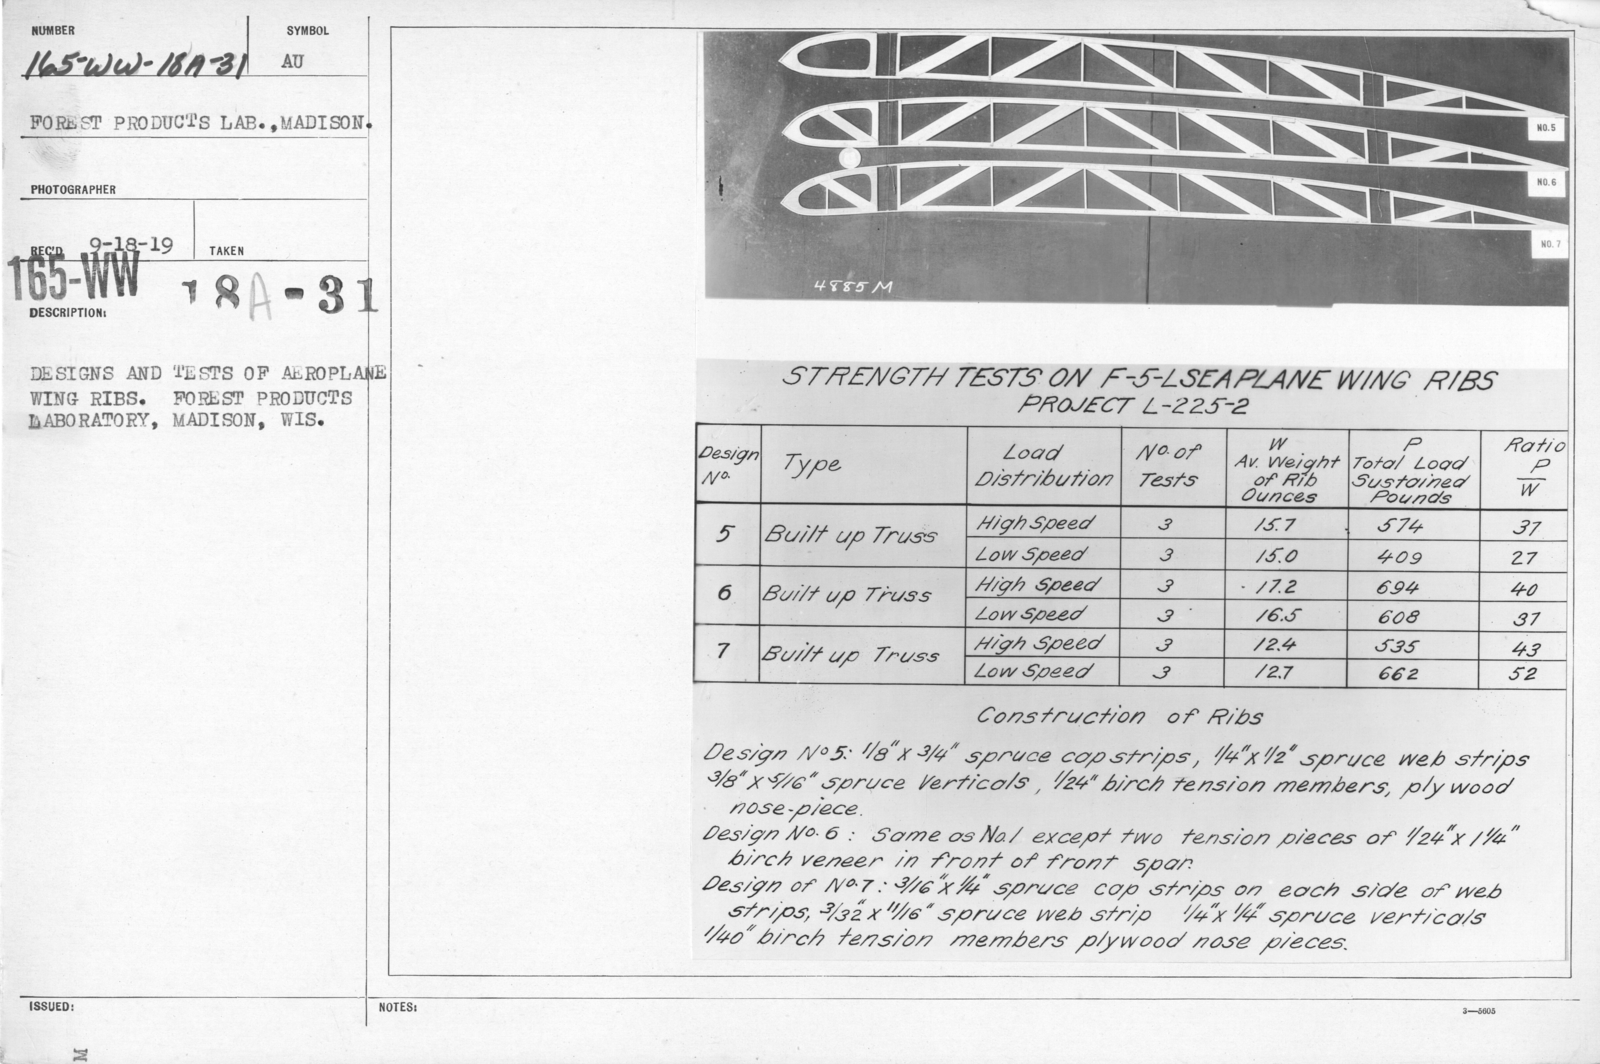 Airplanes - Wings - Designs and tests of airplane ribs. Strength tests on 15-foot airplane wing ribs, Forest Products Laboratory, Madison, Wis